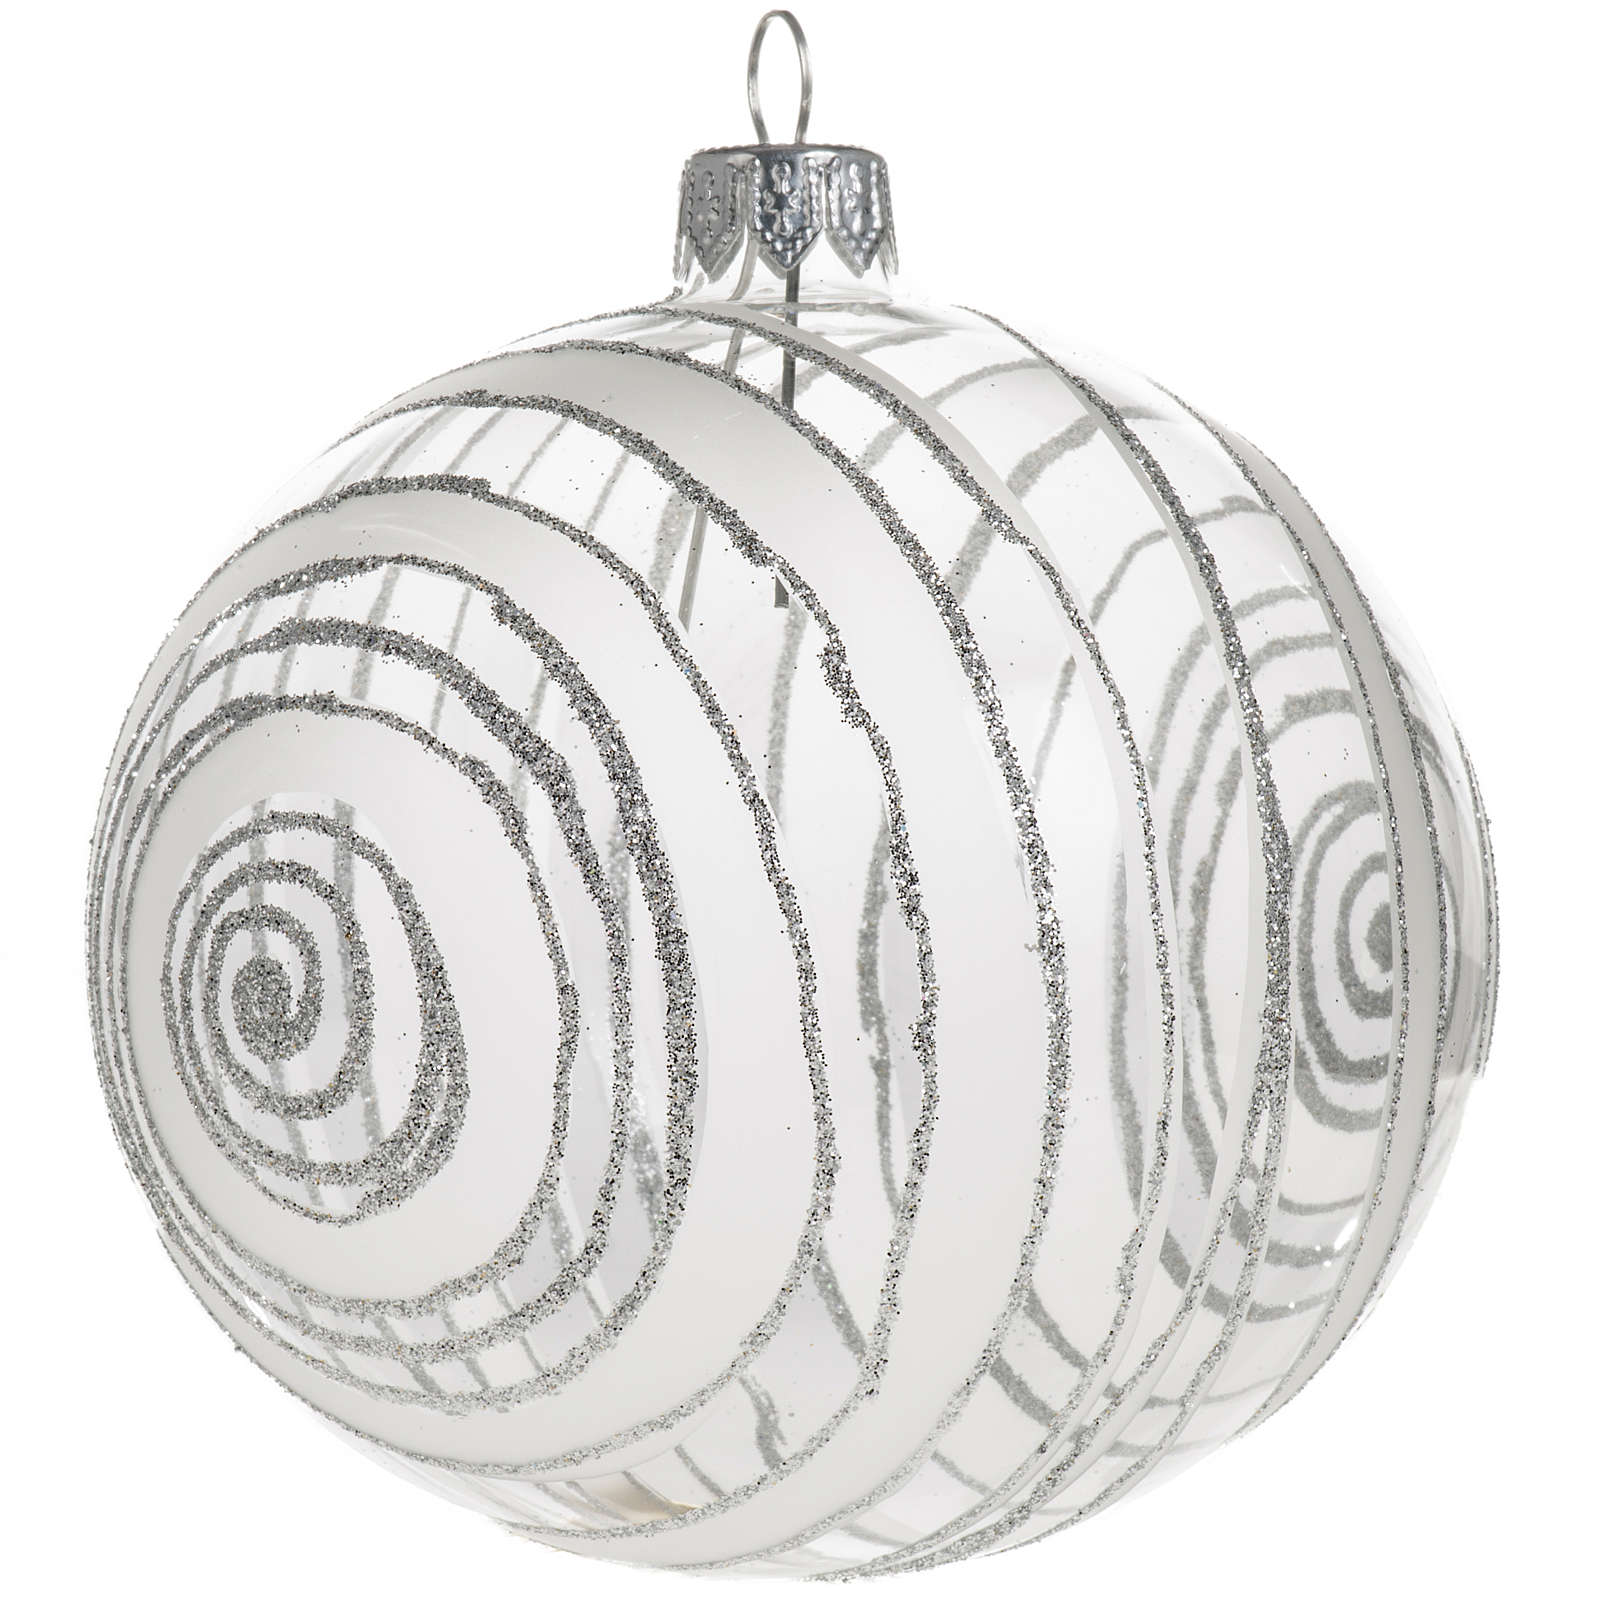 Christmas bauble, silver and transparent glass 10cm 4